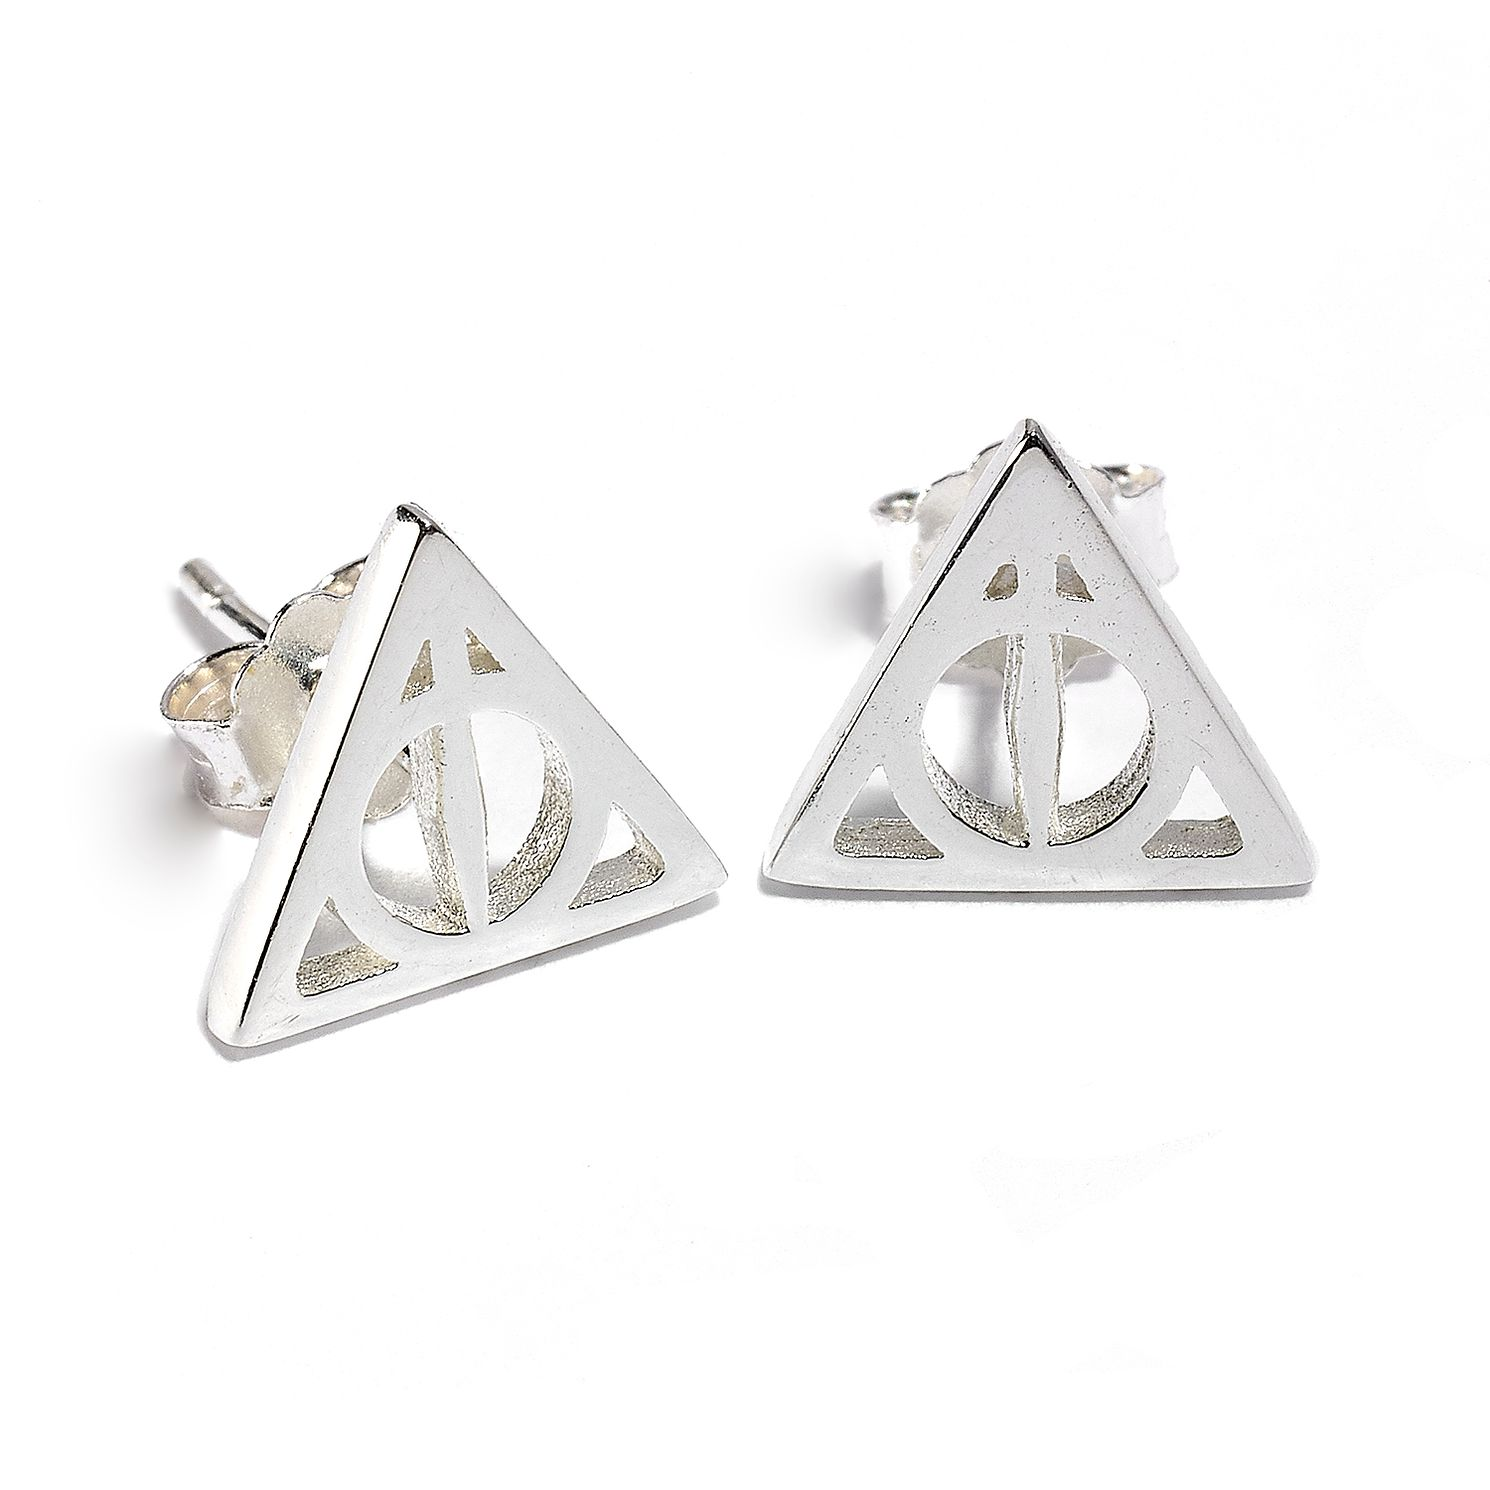 Harry Potter Sterling Silver Deathly Hallows Stud Earrings - Product number 9781188